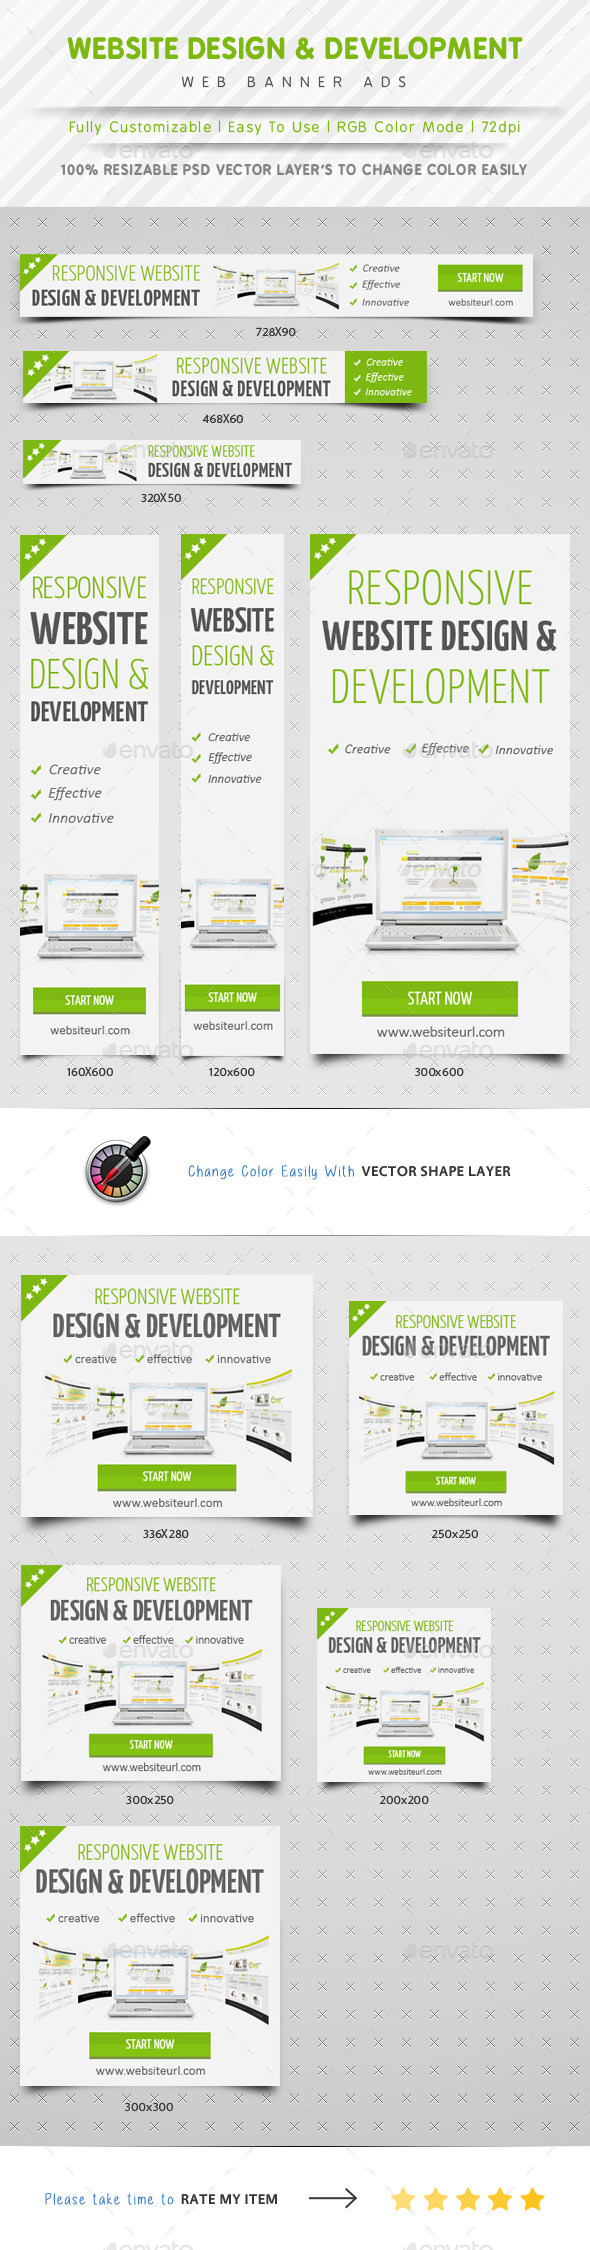 Website Design & Development Banner Ads